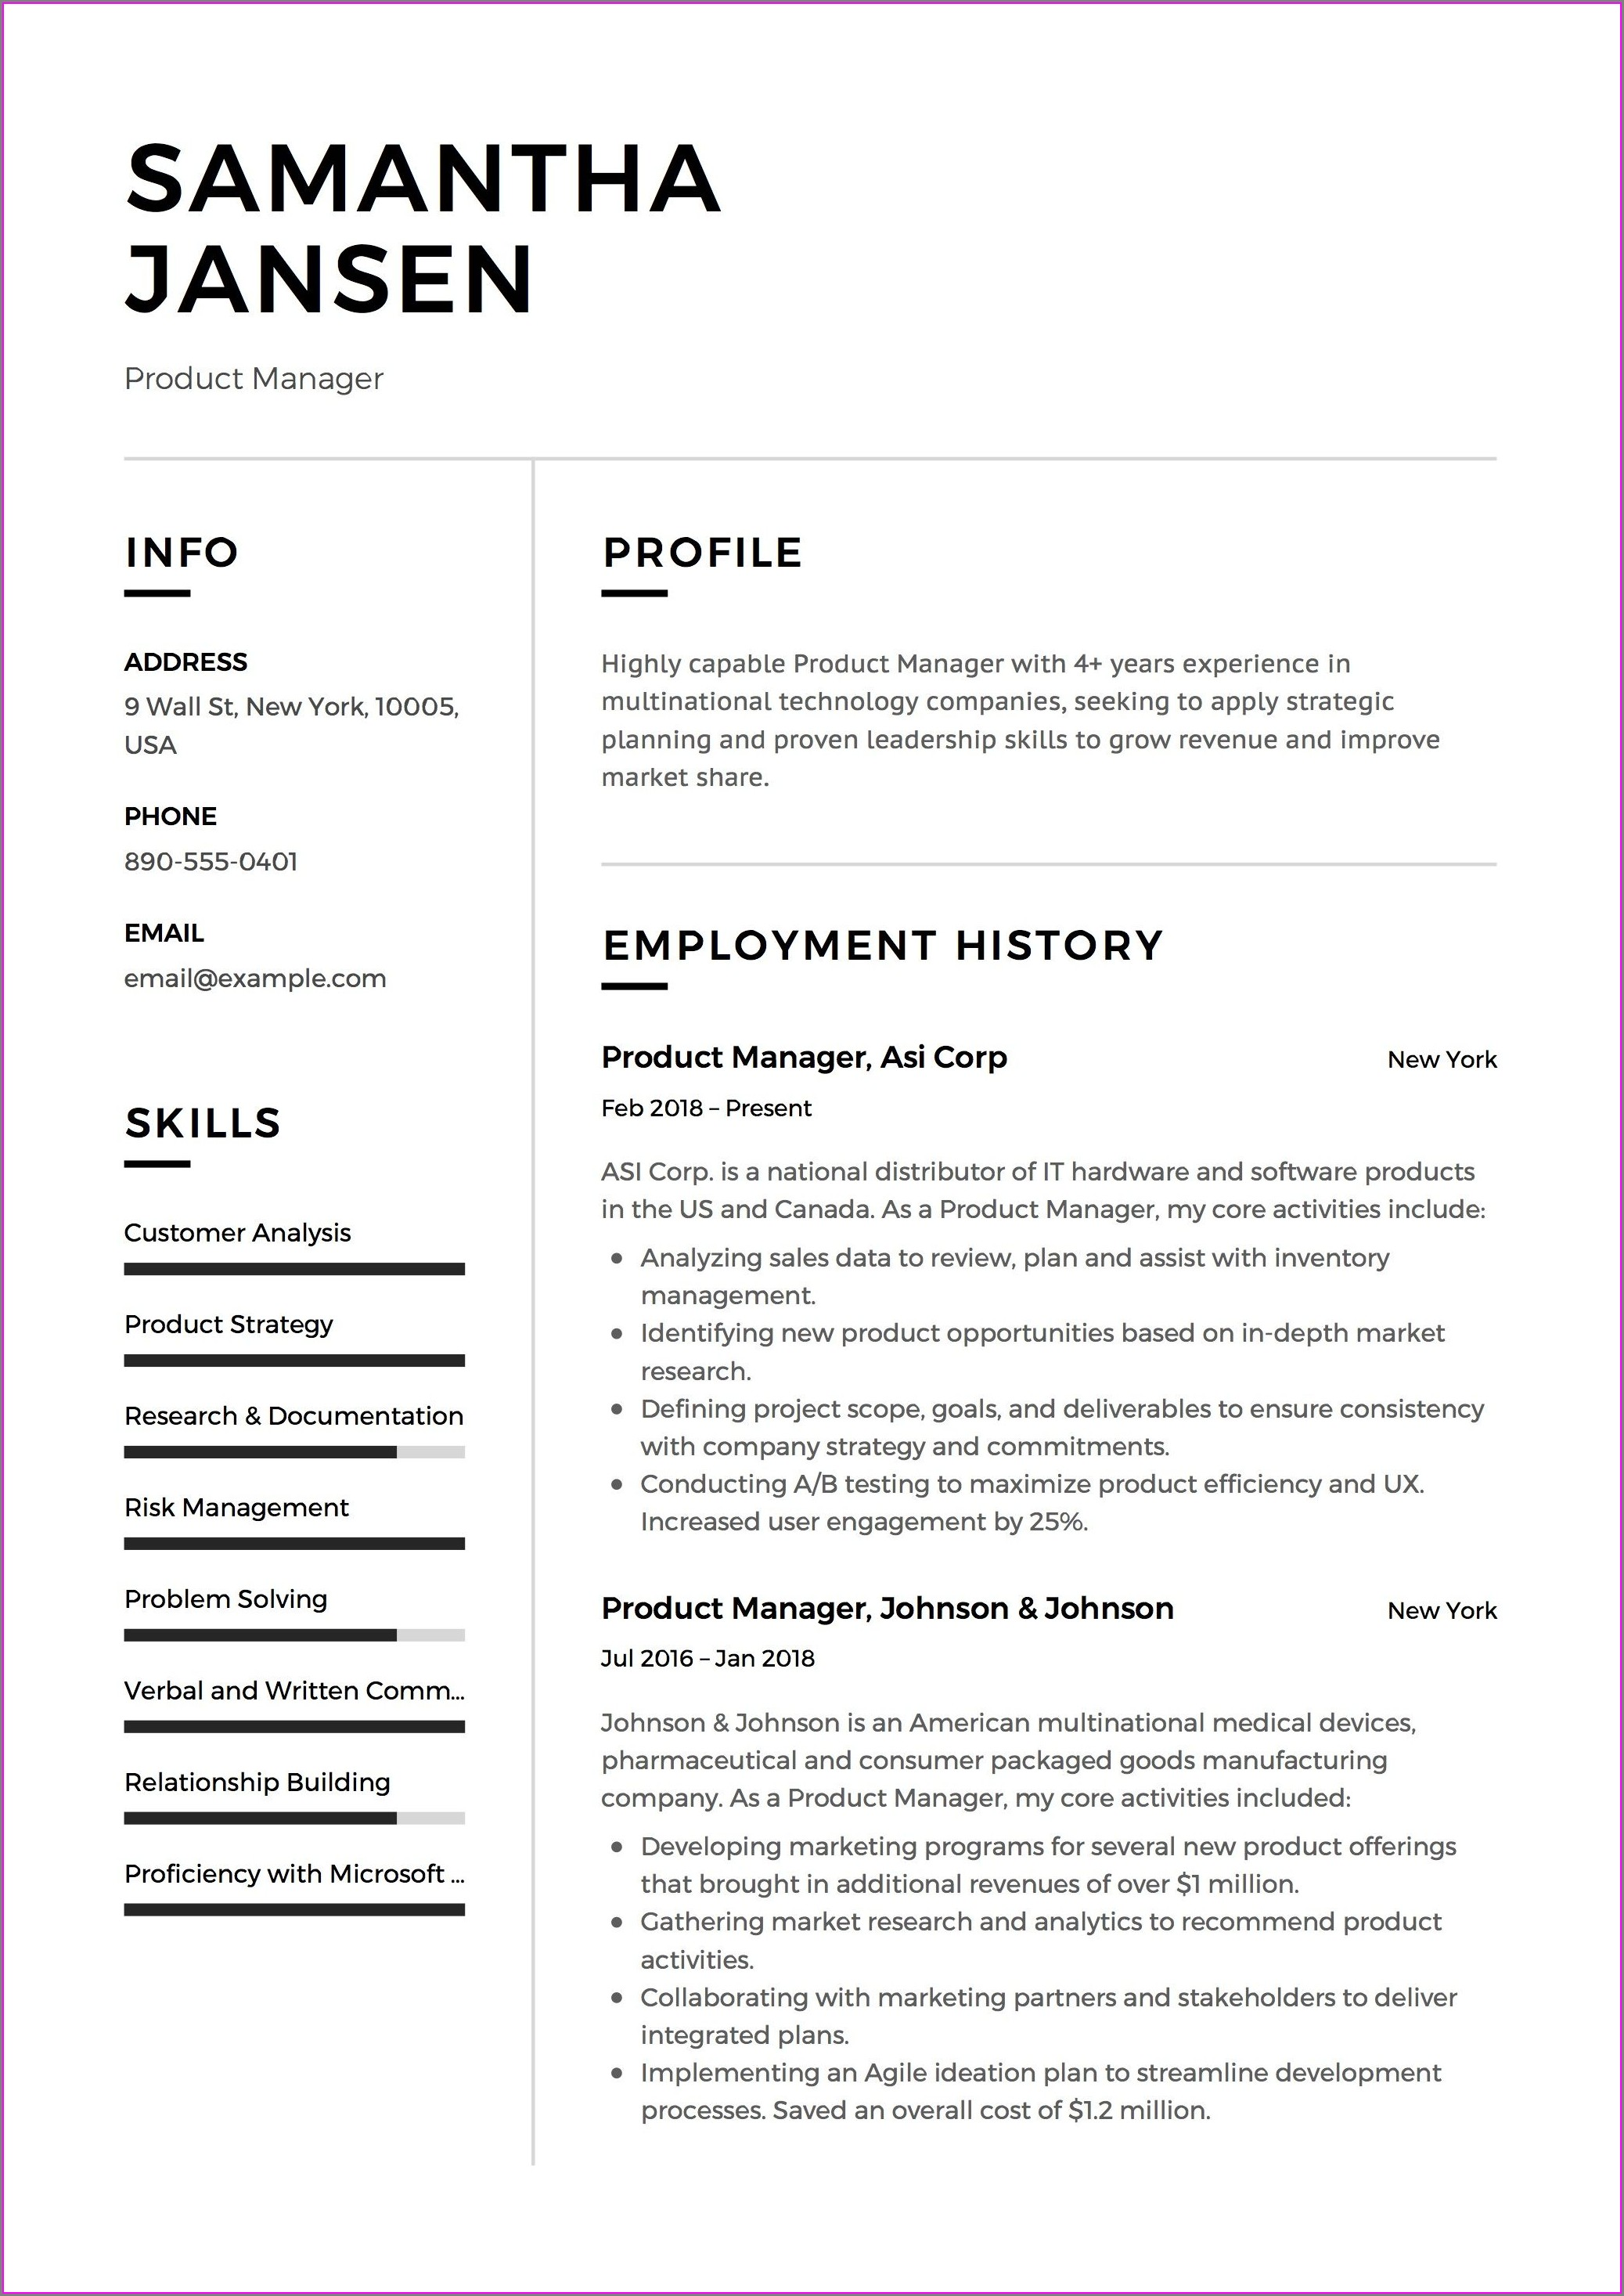 Free Professional Resume Samples Pdf